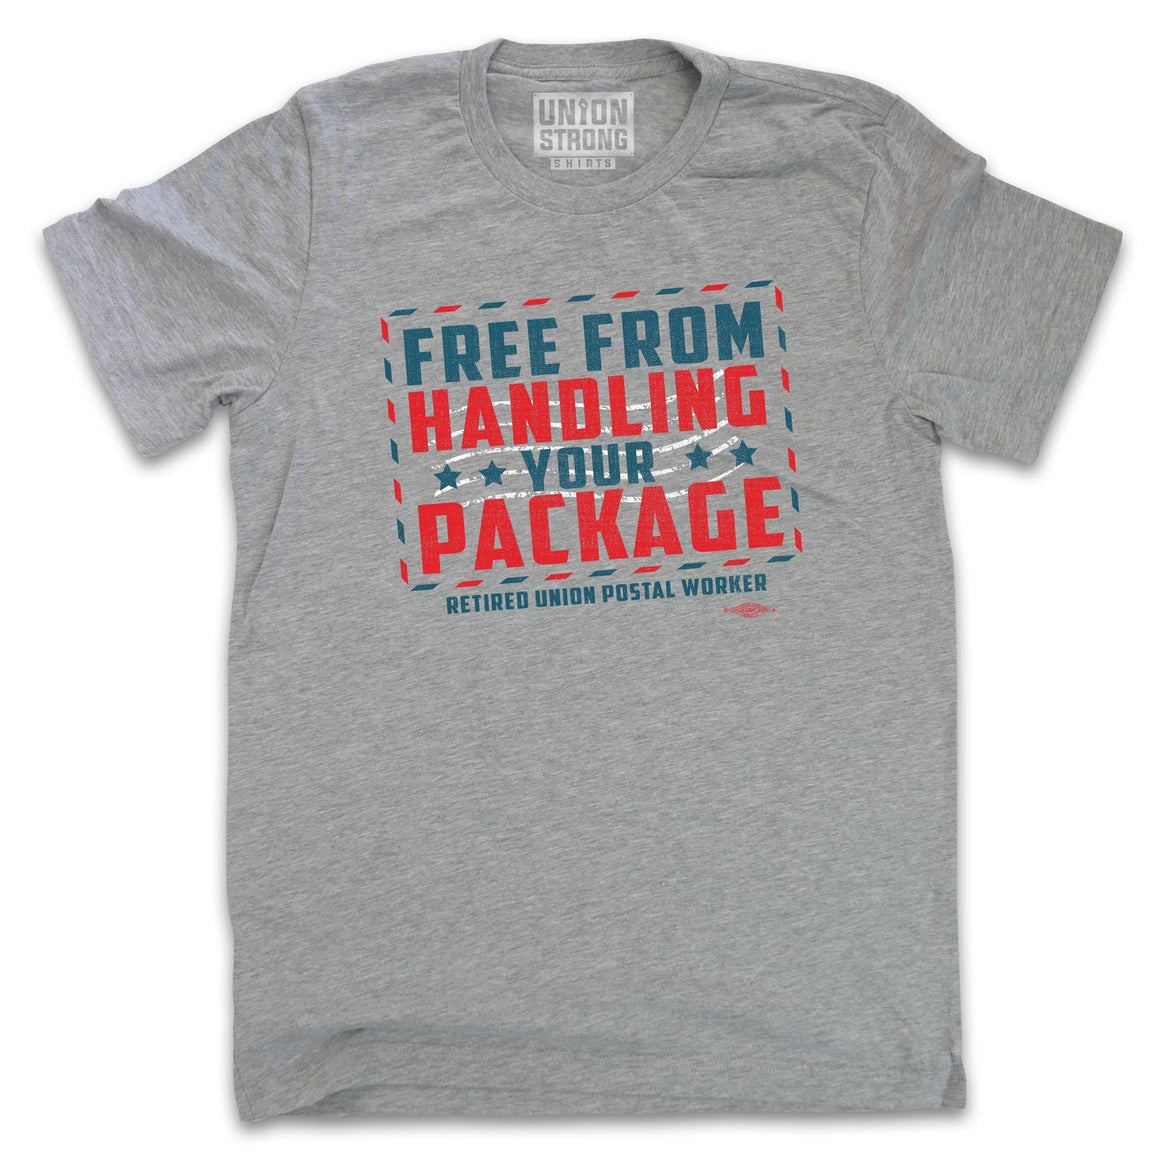 Free From Handling Your Package - Retired Union Postal Worker Shirts unionstrongshirts